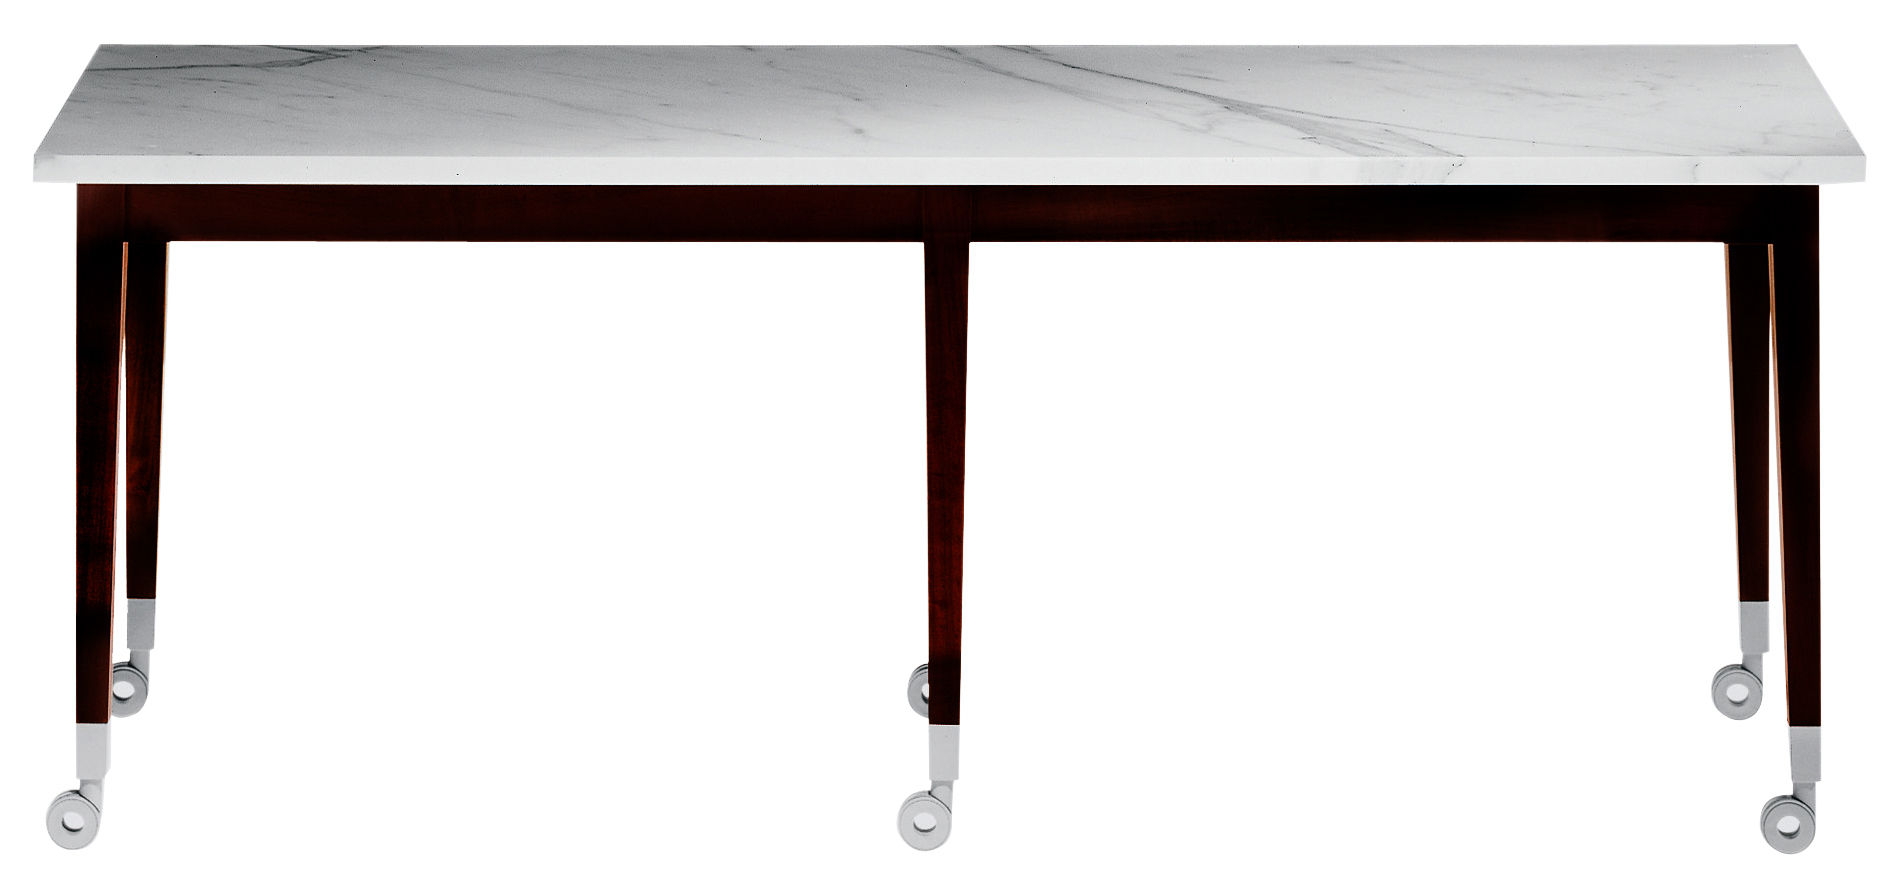 Furniture - Coffee Tables - Neoz Coffee table - Rectangular by Driade - Ebony/ marble - Mahogany, Marble